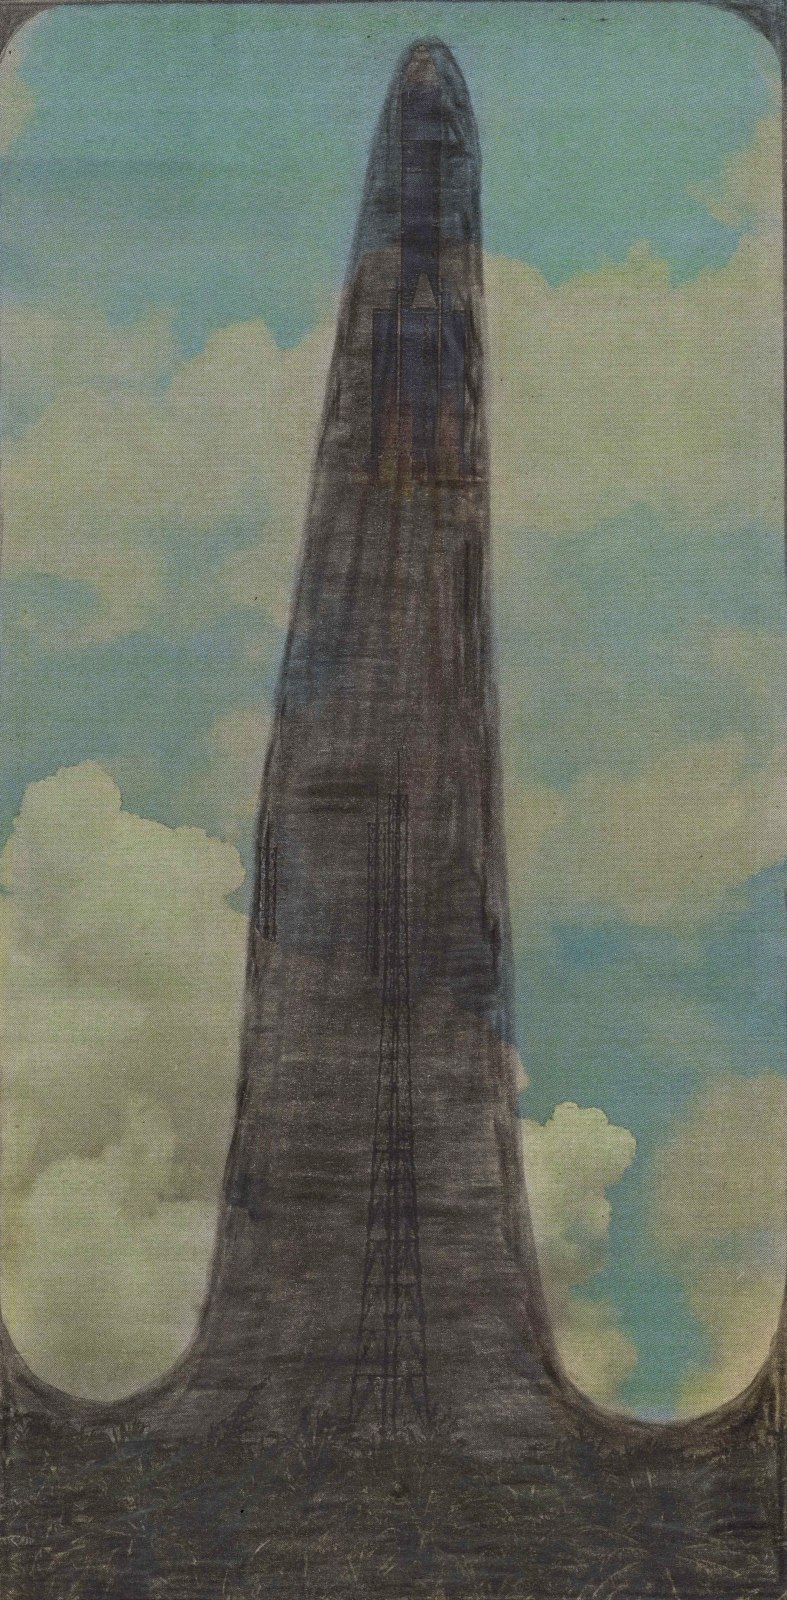 Untitled , 2020 Graphite and colored pencils on newsprint clip mounted on paper 7 1/2 x 3 3/4 in. (19.1 x 9.5 cm.) (LpS 375) $4,200